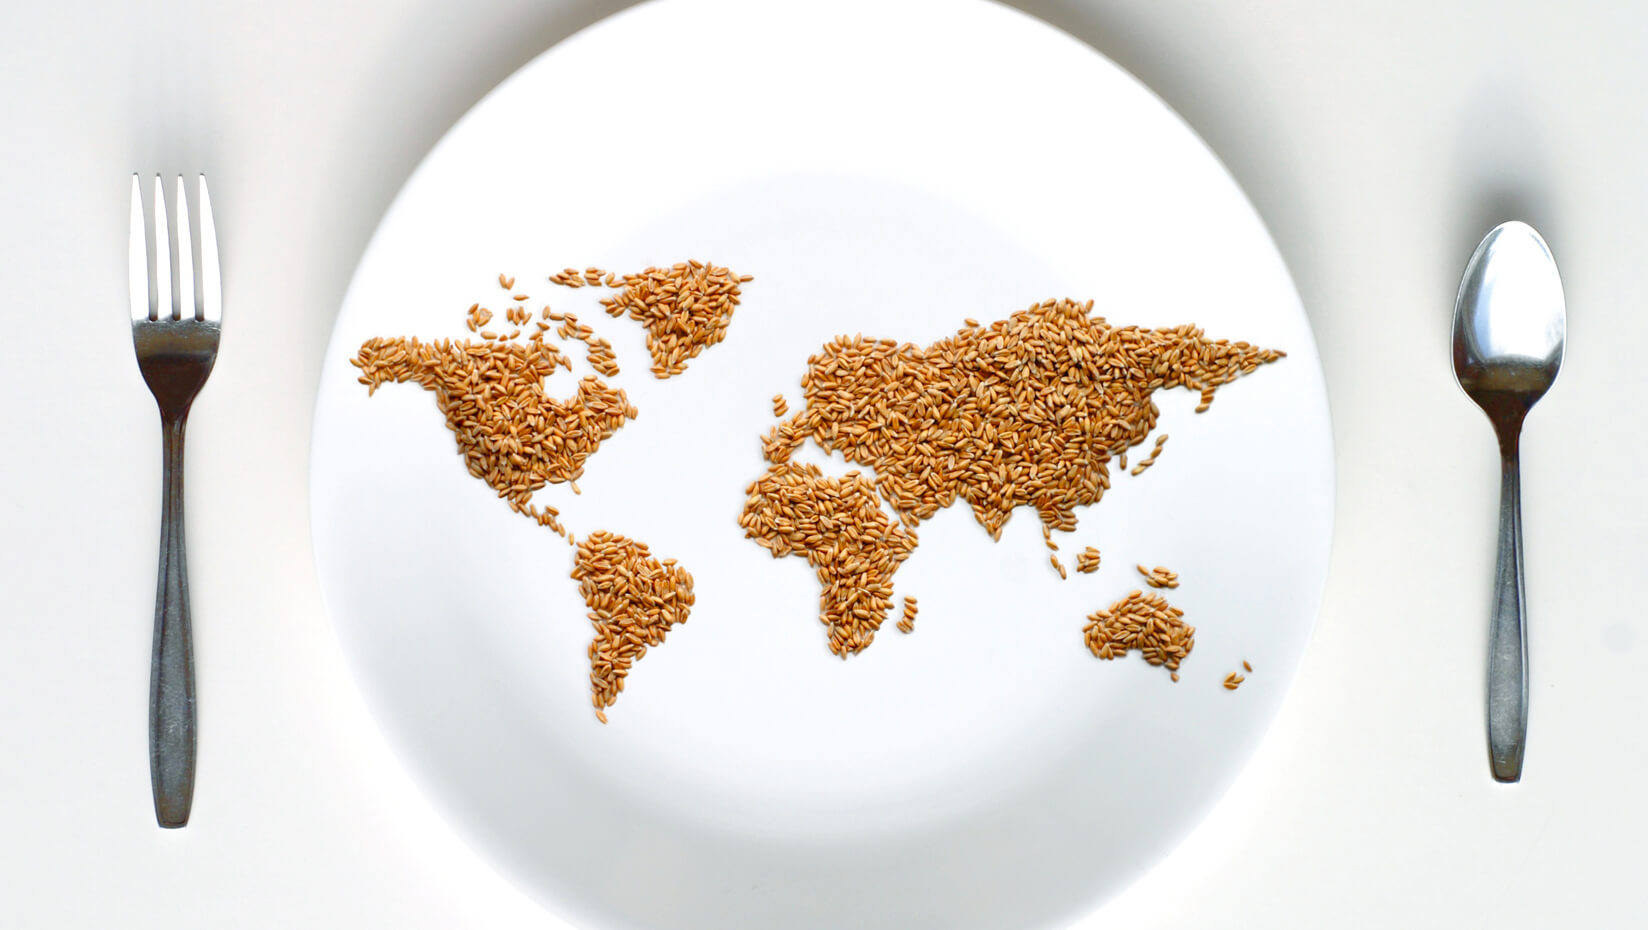 map of the world made of grain on a plate with a fork and spoon